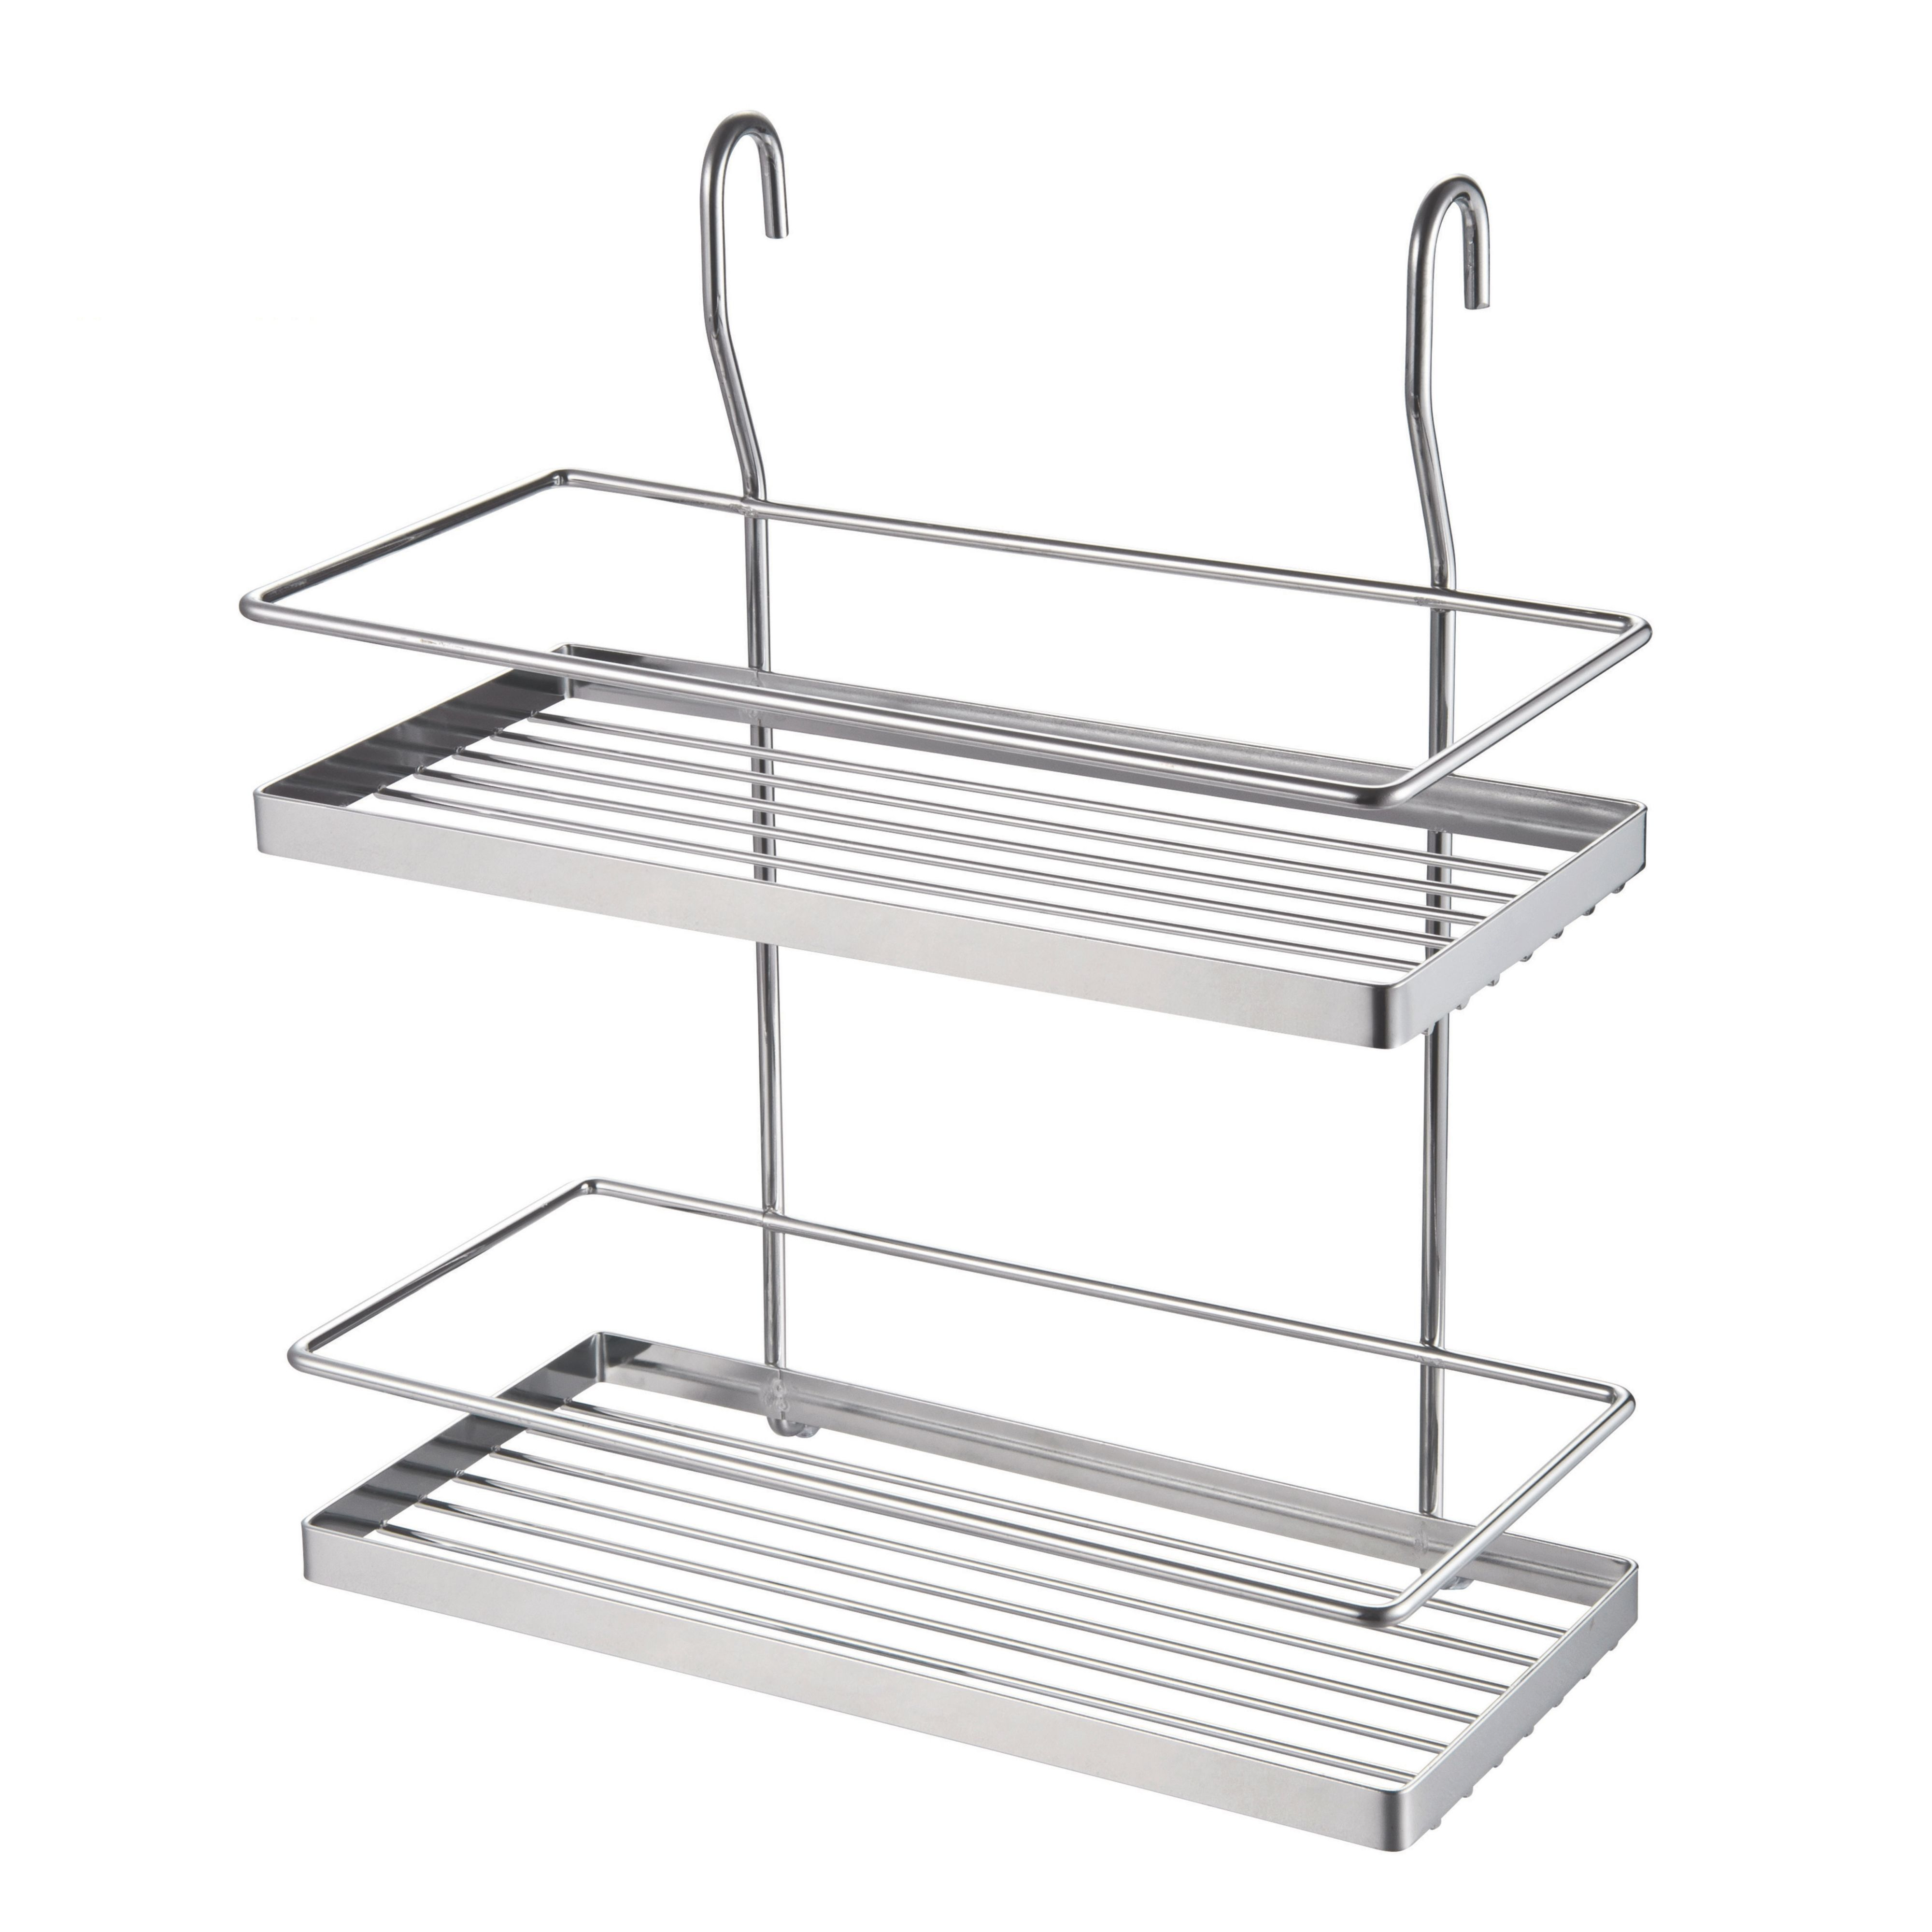 hastings chrome effect two tier wire shelf l 300mm d. Black Bedroom Furniture Sets. Home Design Ideas